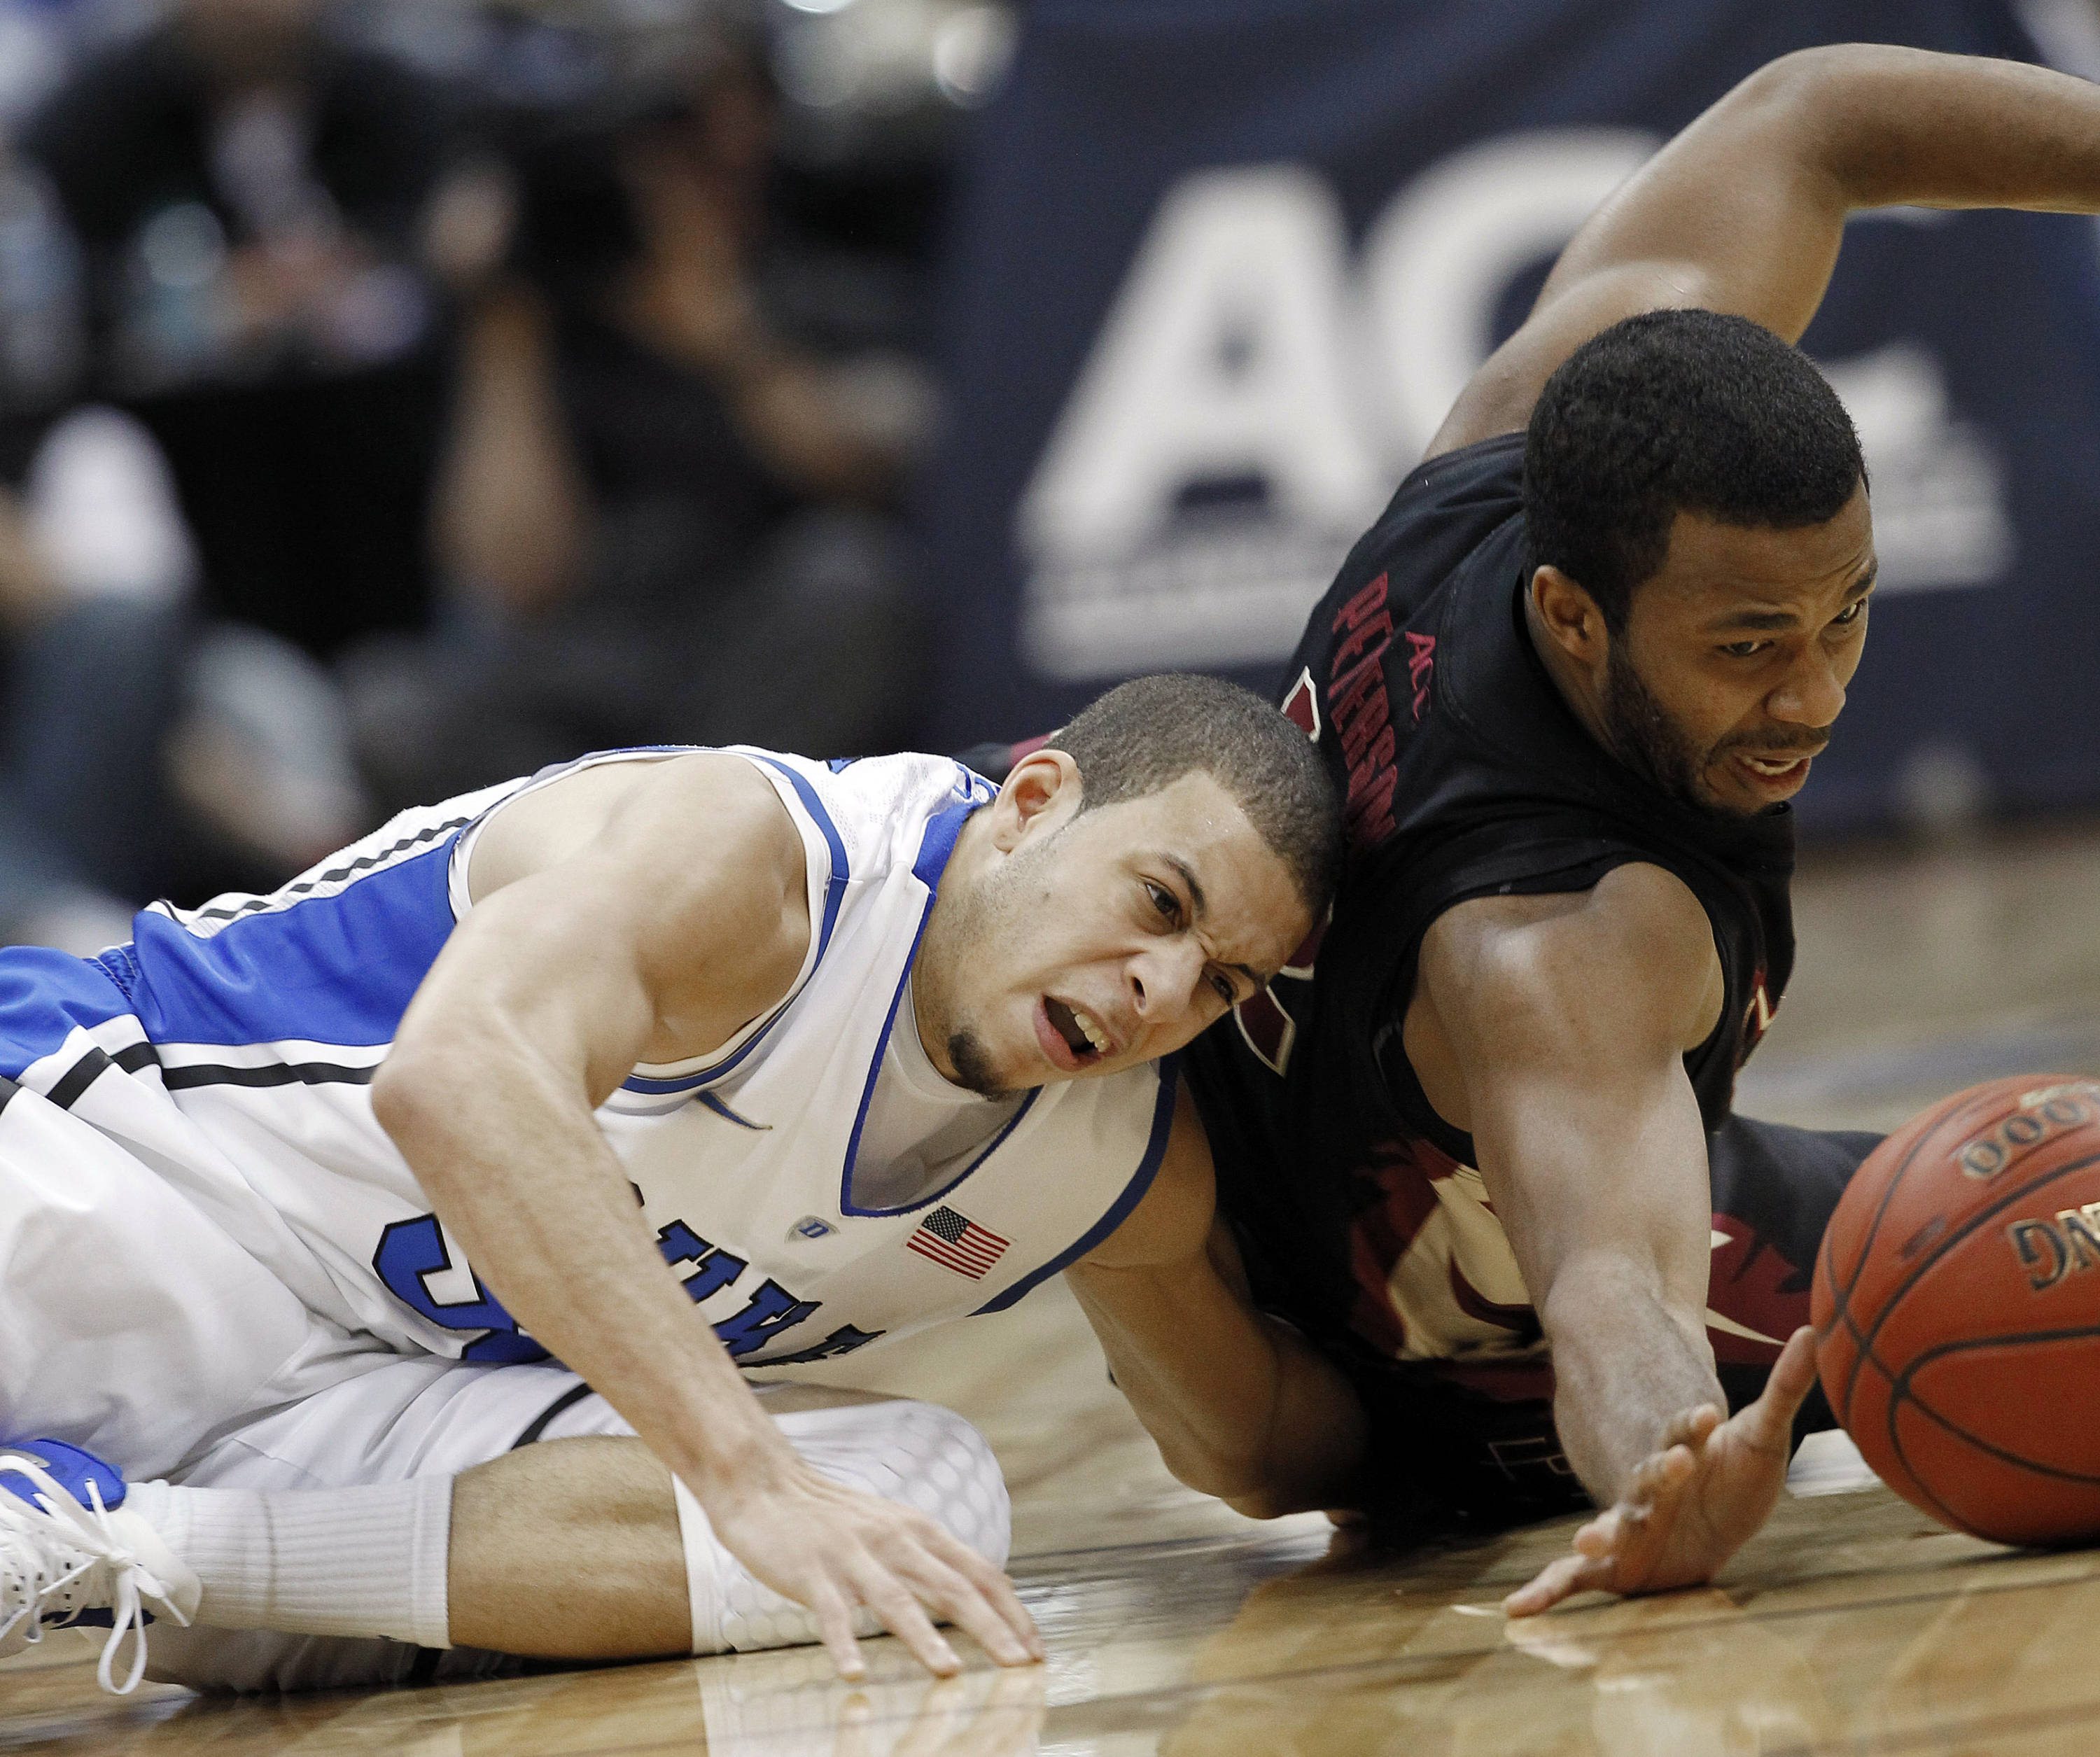 Duke guard Seth Curry (30) and Florida State guard Jeff Peterson (12) fight for a loose ball during the second half of an NCAA college basketball game in the semifinals of the Atlantic Coast Conference tournament, Saturday, March 10, 2012, in Atlanta. (AP Photo/John Bazemore)